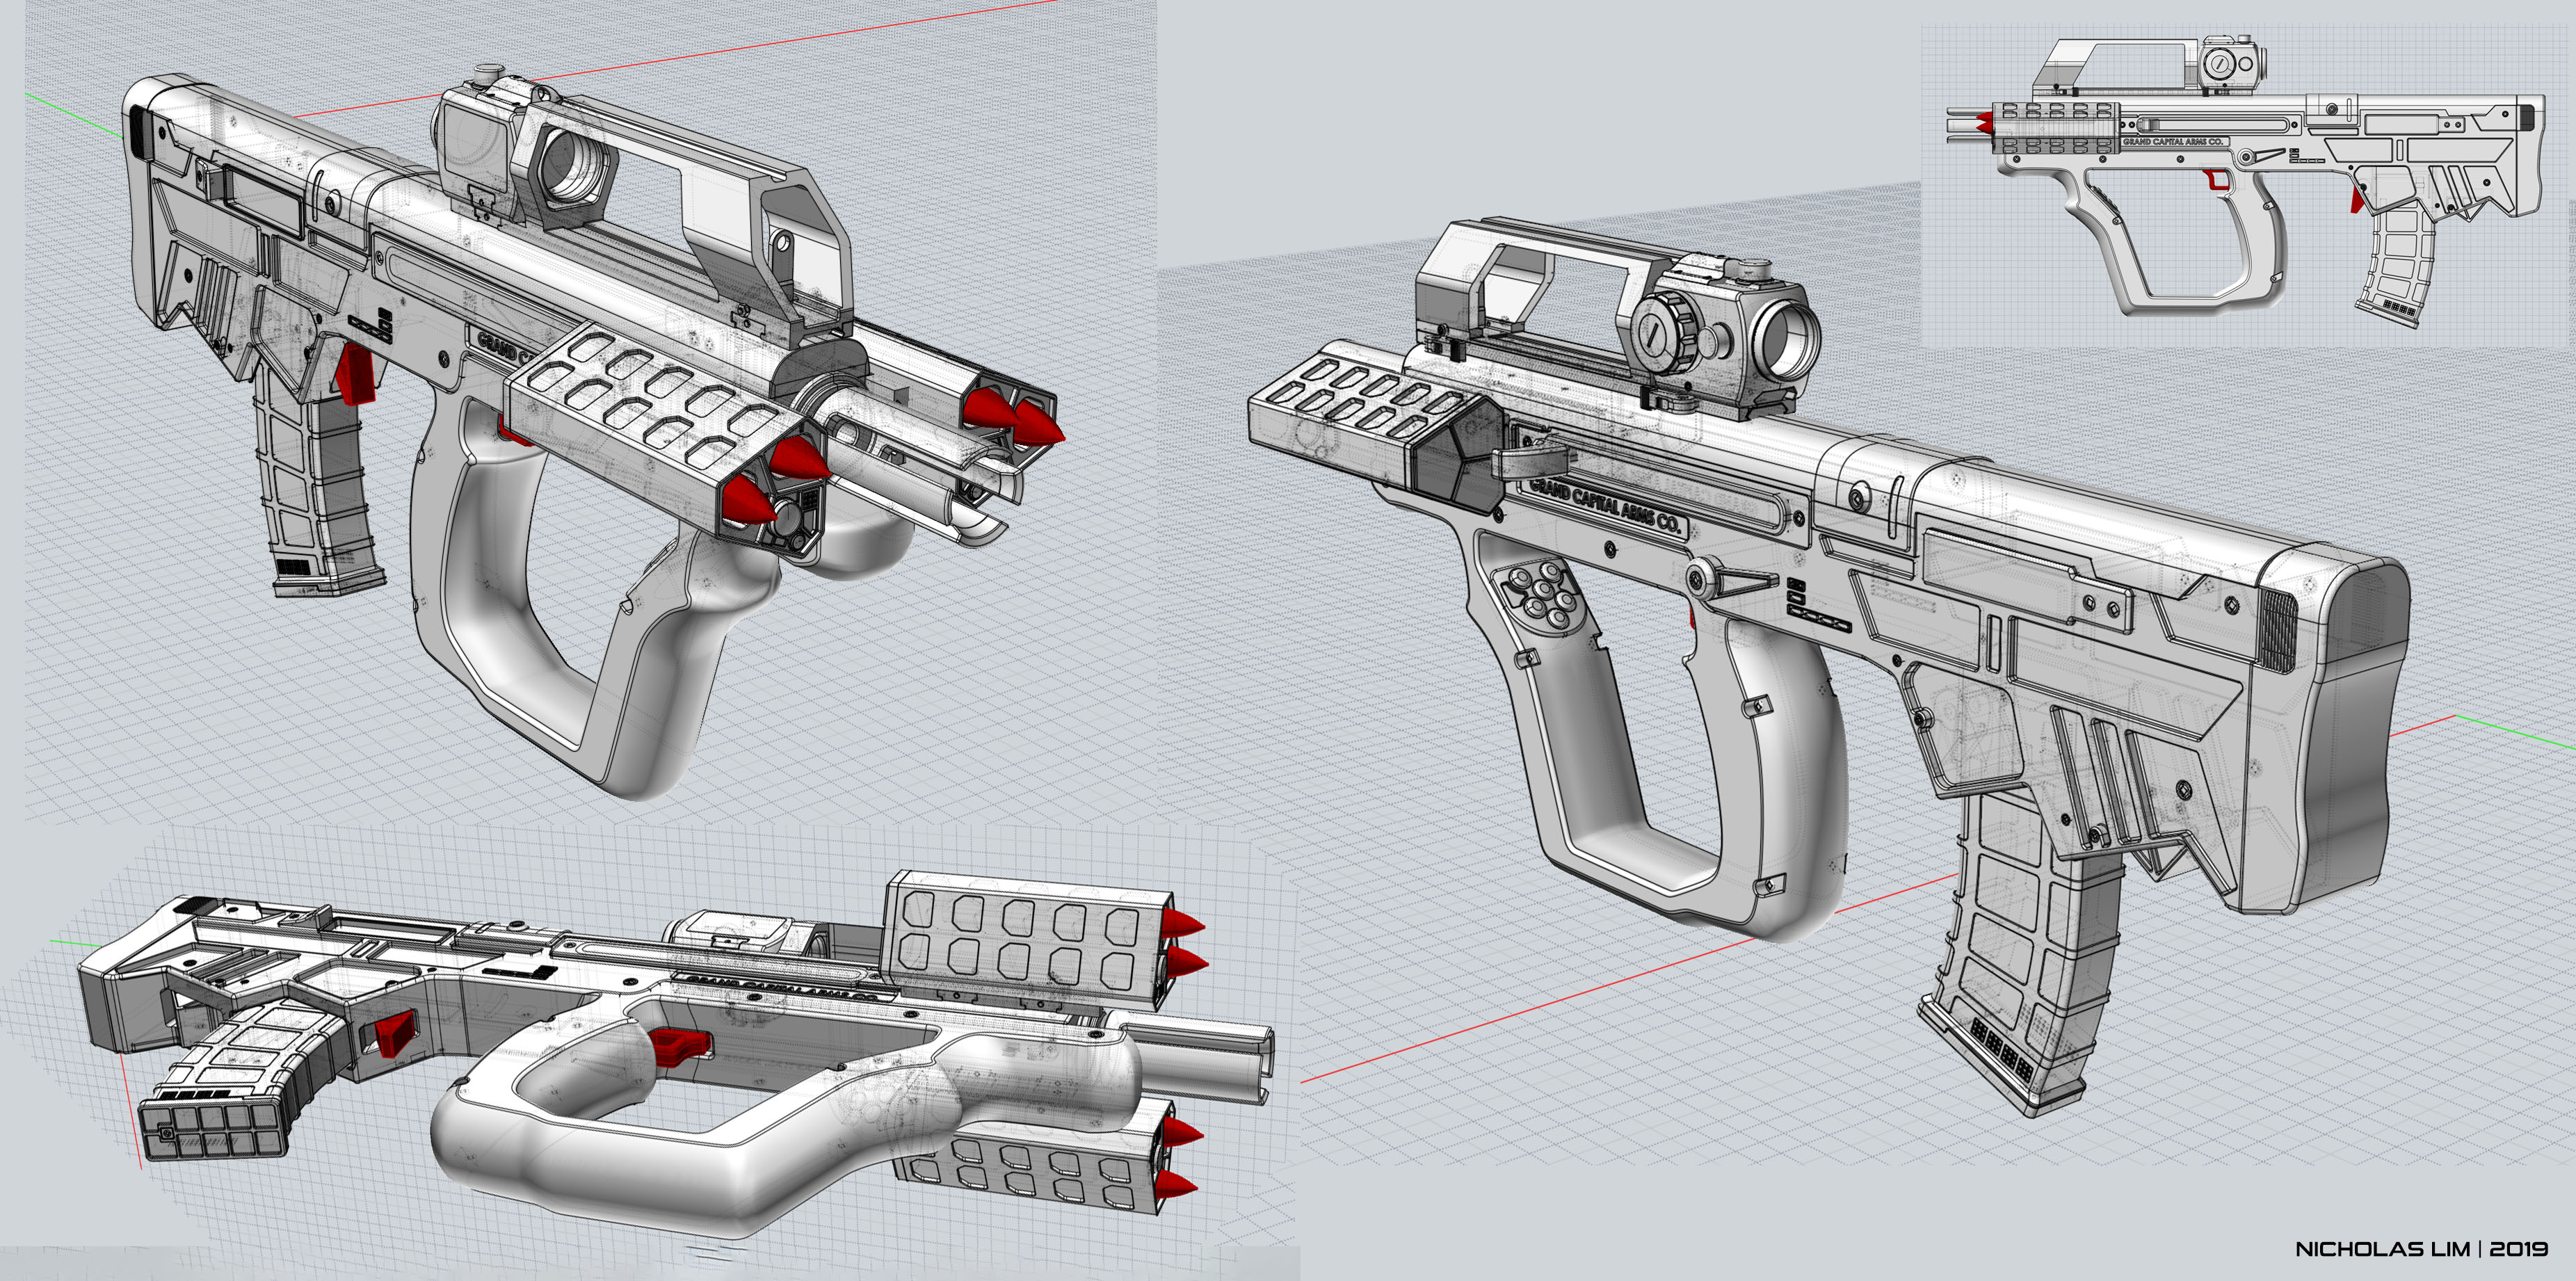 Three D Guns 2 WiP - 'Short Bow' Carbine